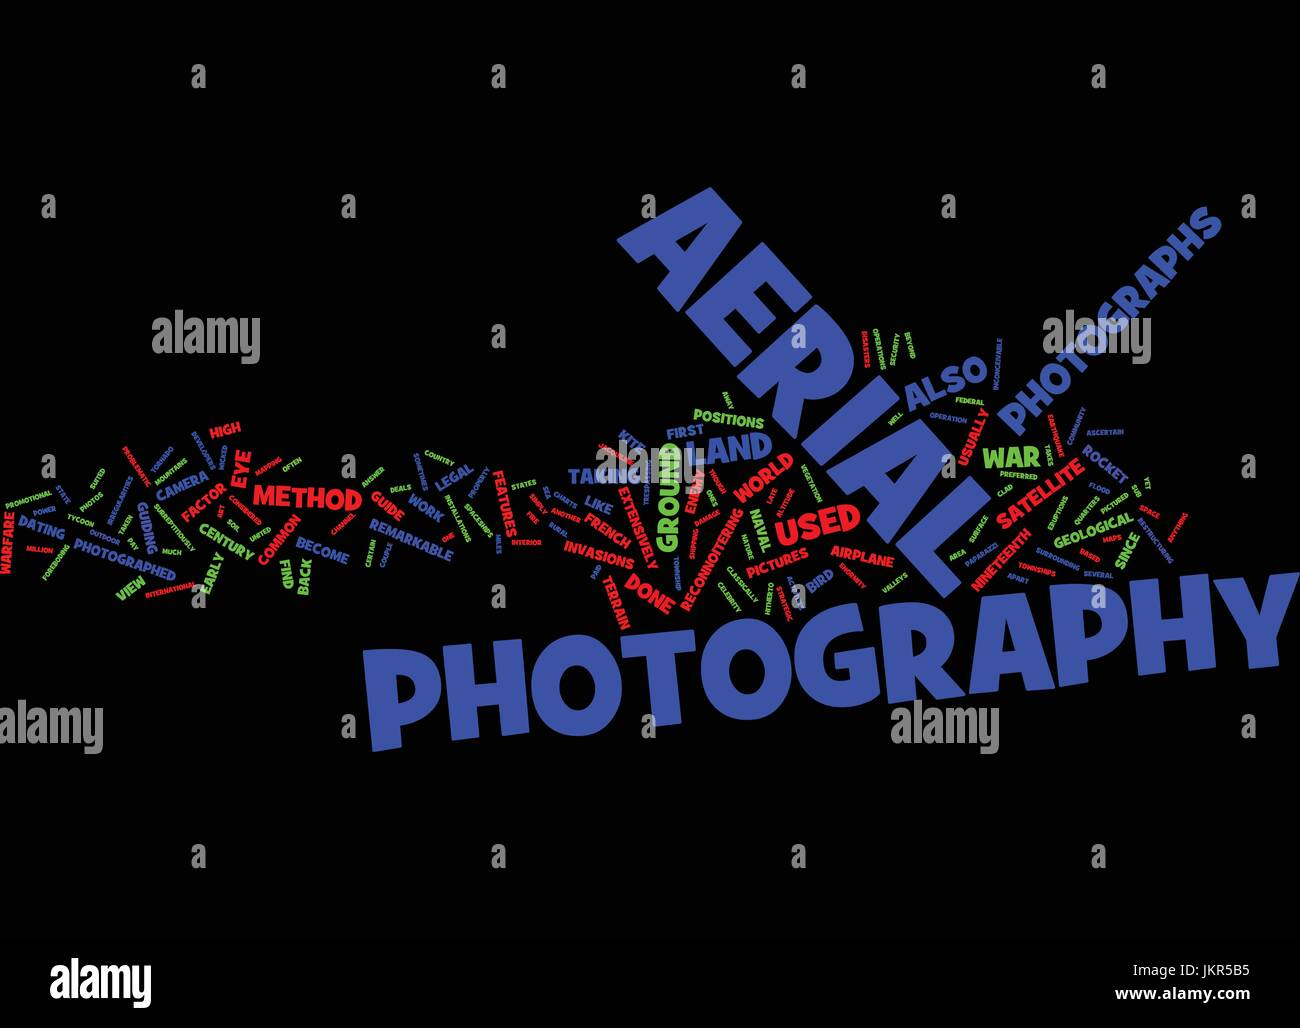 THE ART OF OUTDOOR AERIAL PHOTOGRAPHY Text Background Word Cloud Concept - Stock Vector